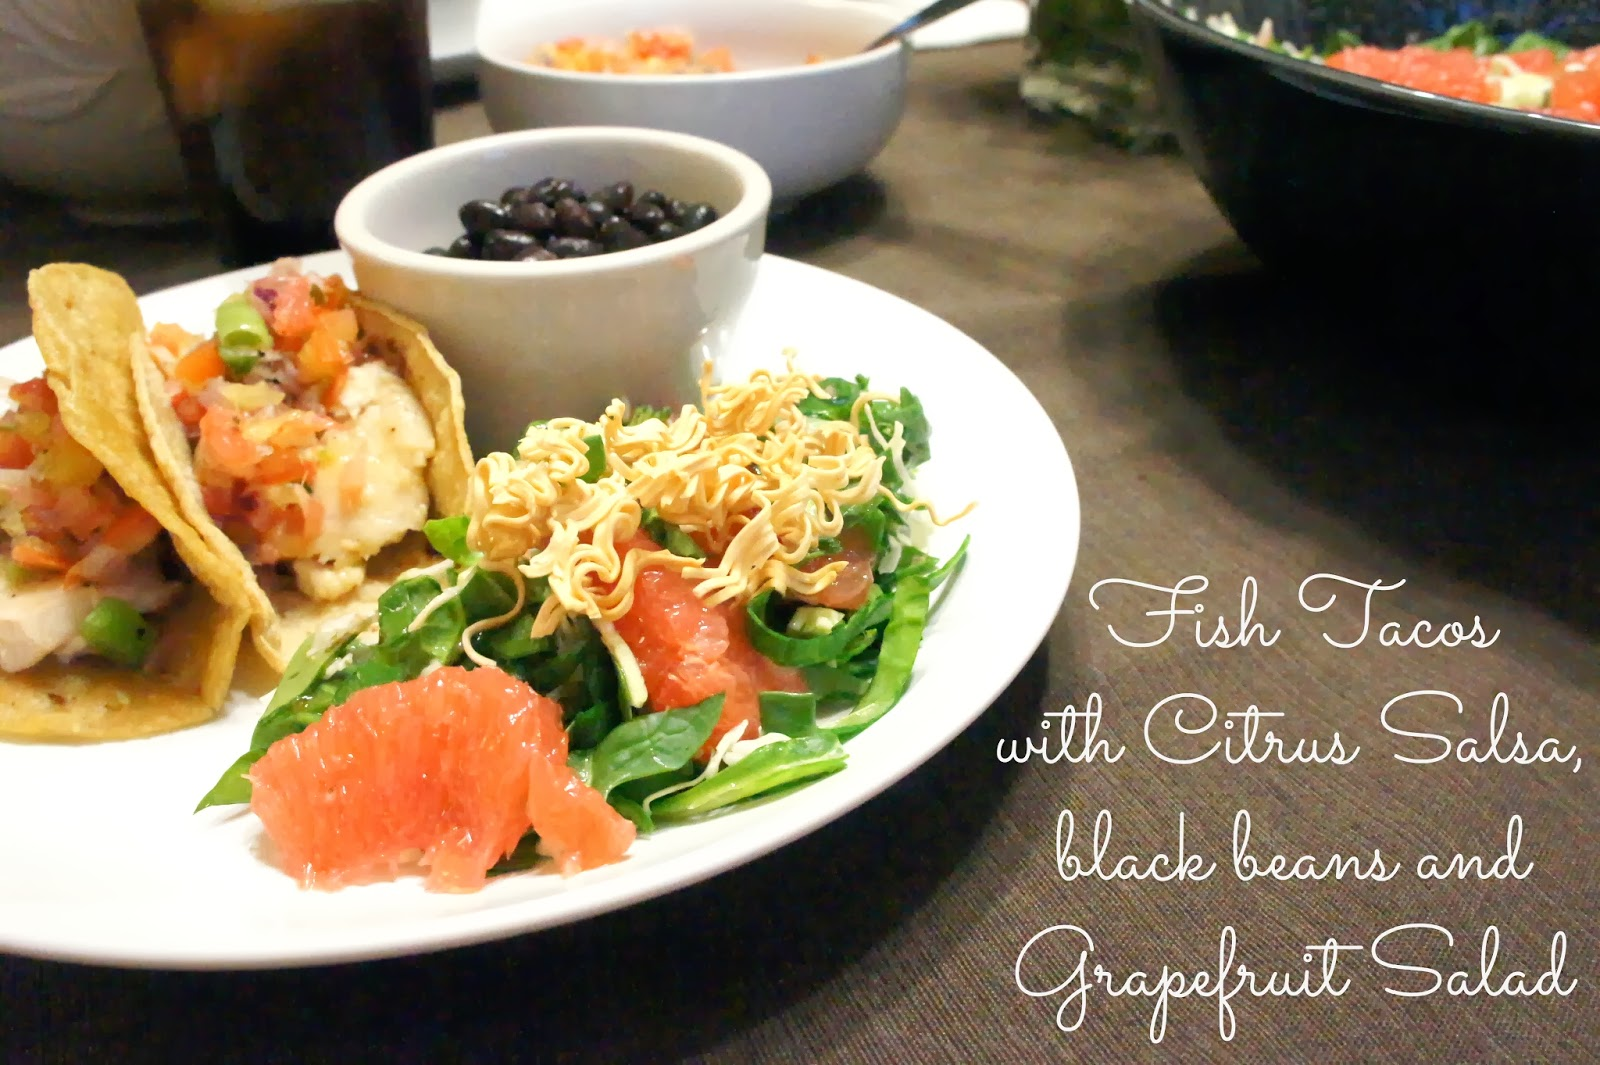 Fish Tacos with Citrus Salsa, black beans and Grapefruit Salad {Recipe}